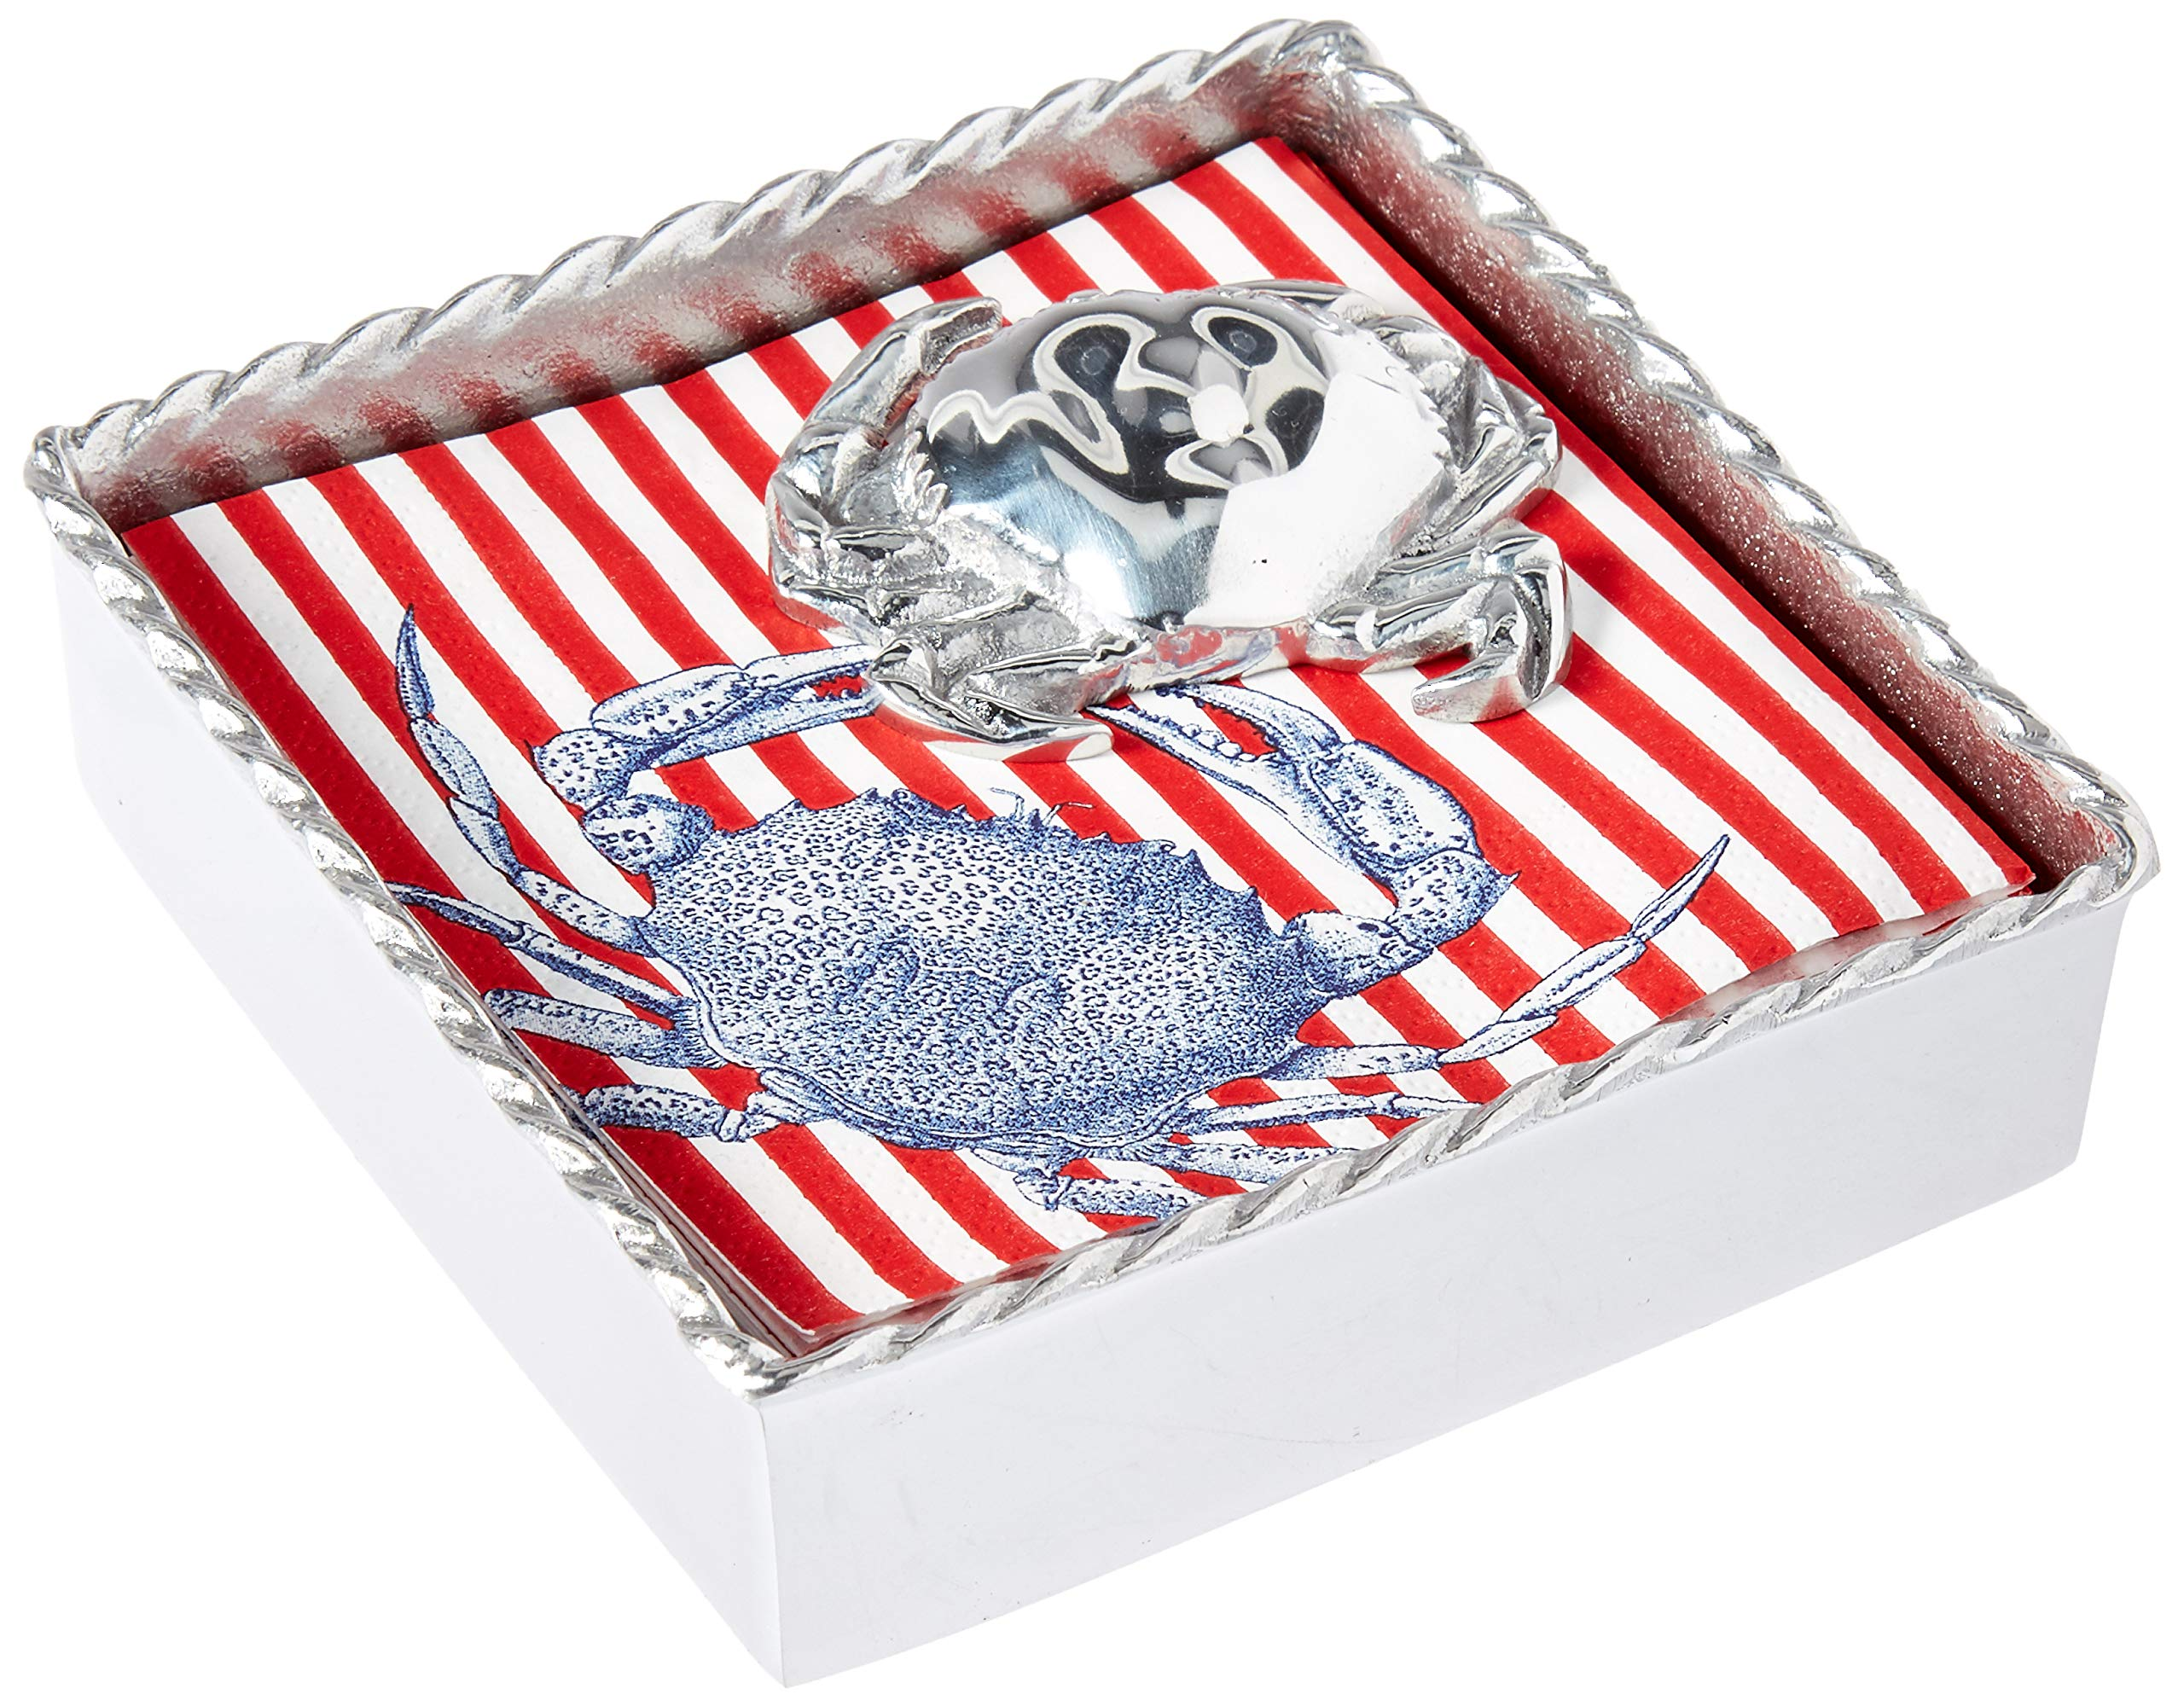 Mariposa 2640-C Crab Rope Napkin Box, One Size, Silver by MARIPOSA